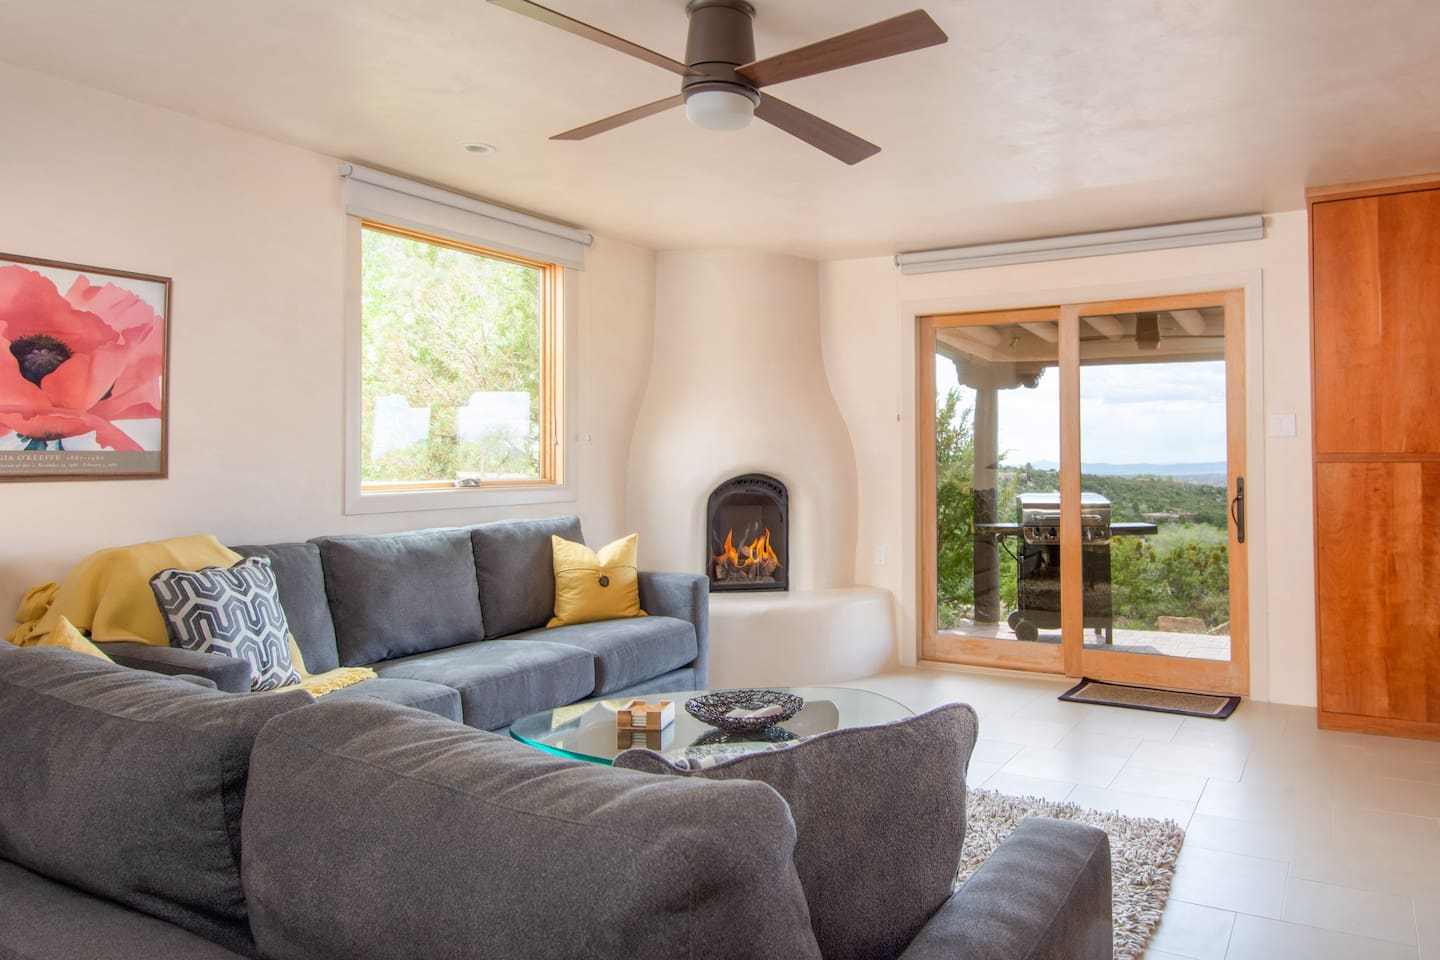 Welcome to Santa Fe! This luxurious pueblo is professionally managed by TurnKey Vacation Rentals.